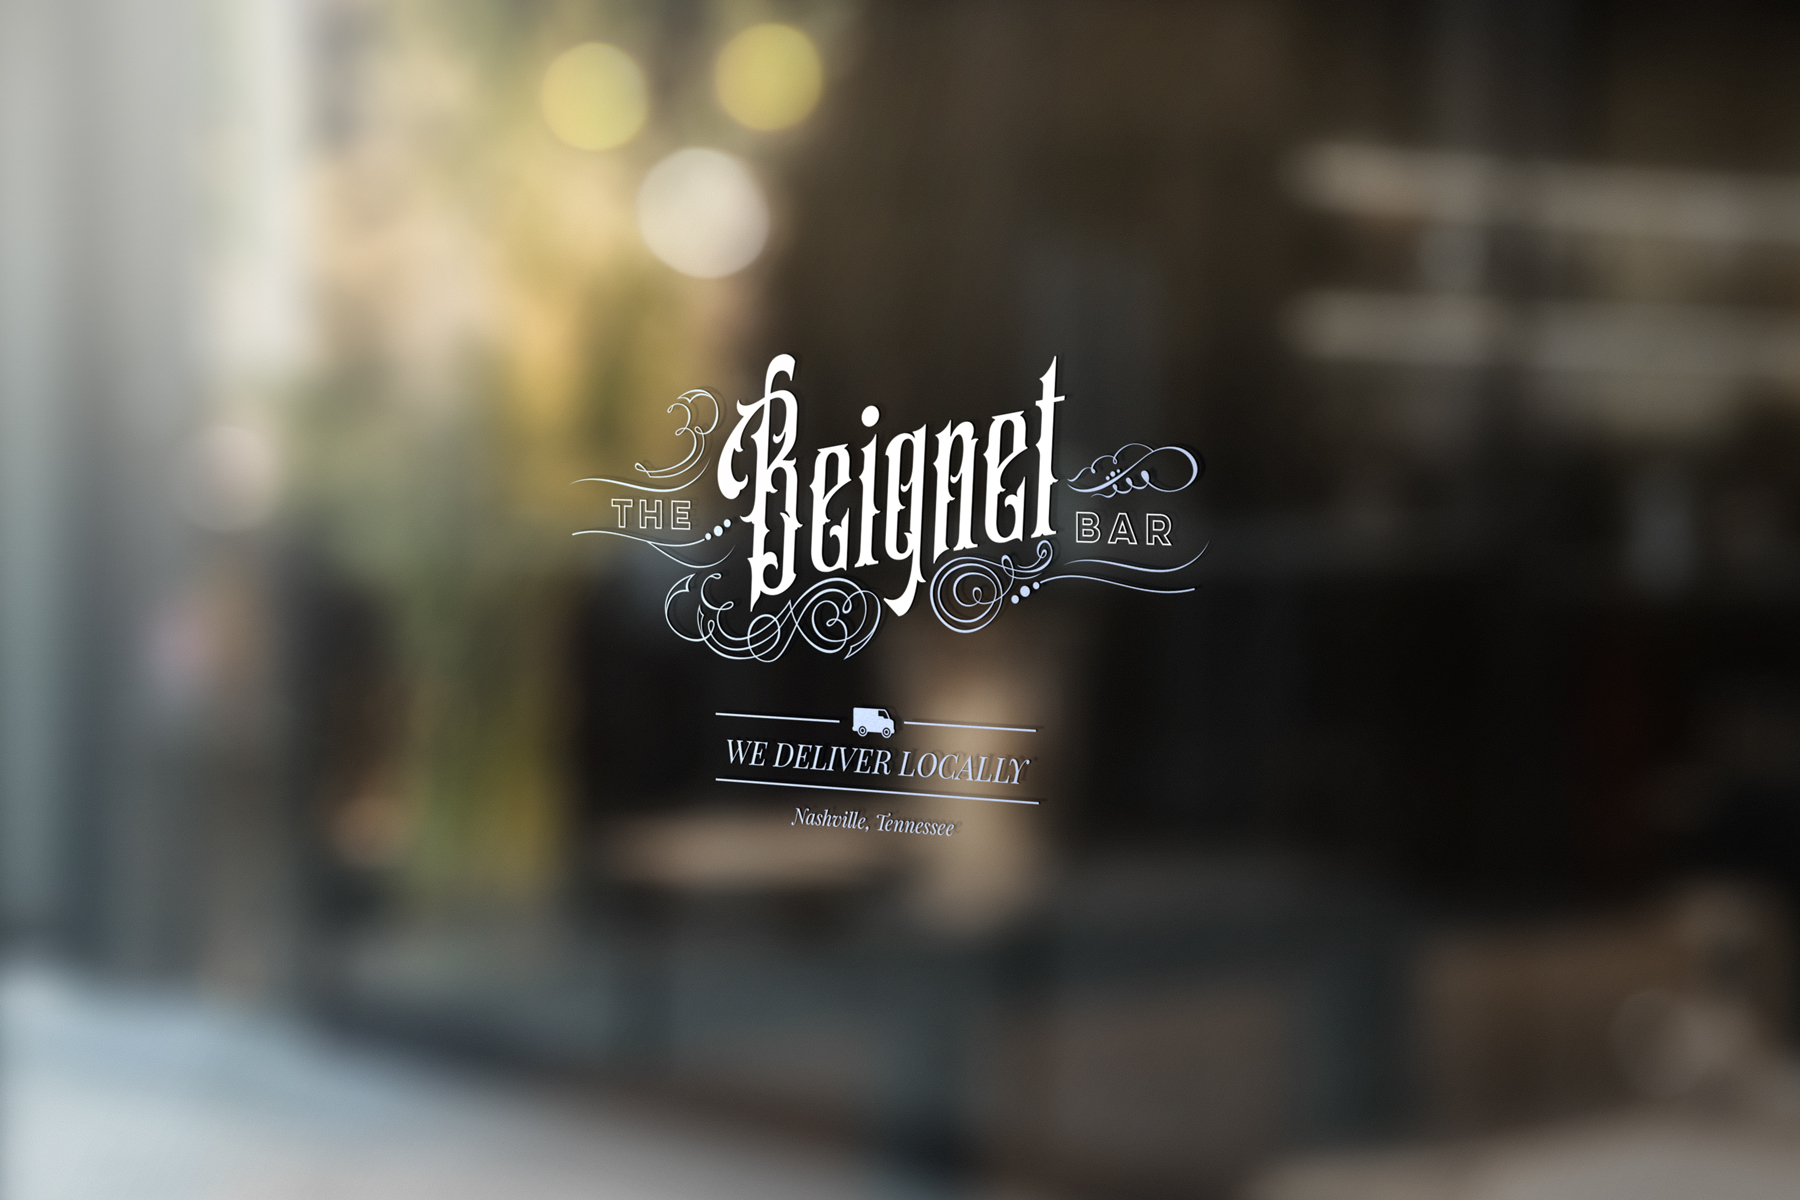 The Beignet Bar Logo design by Hire Henri Creative in Chicago Illinois